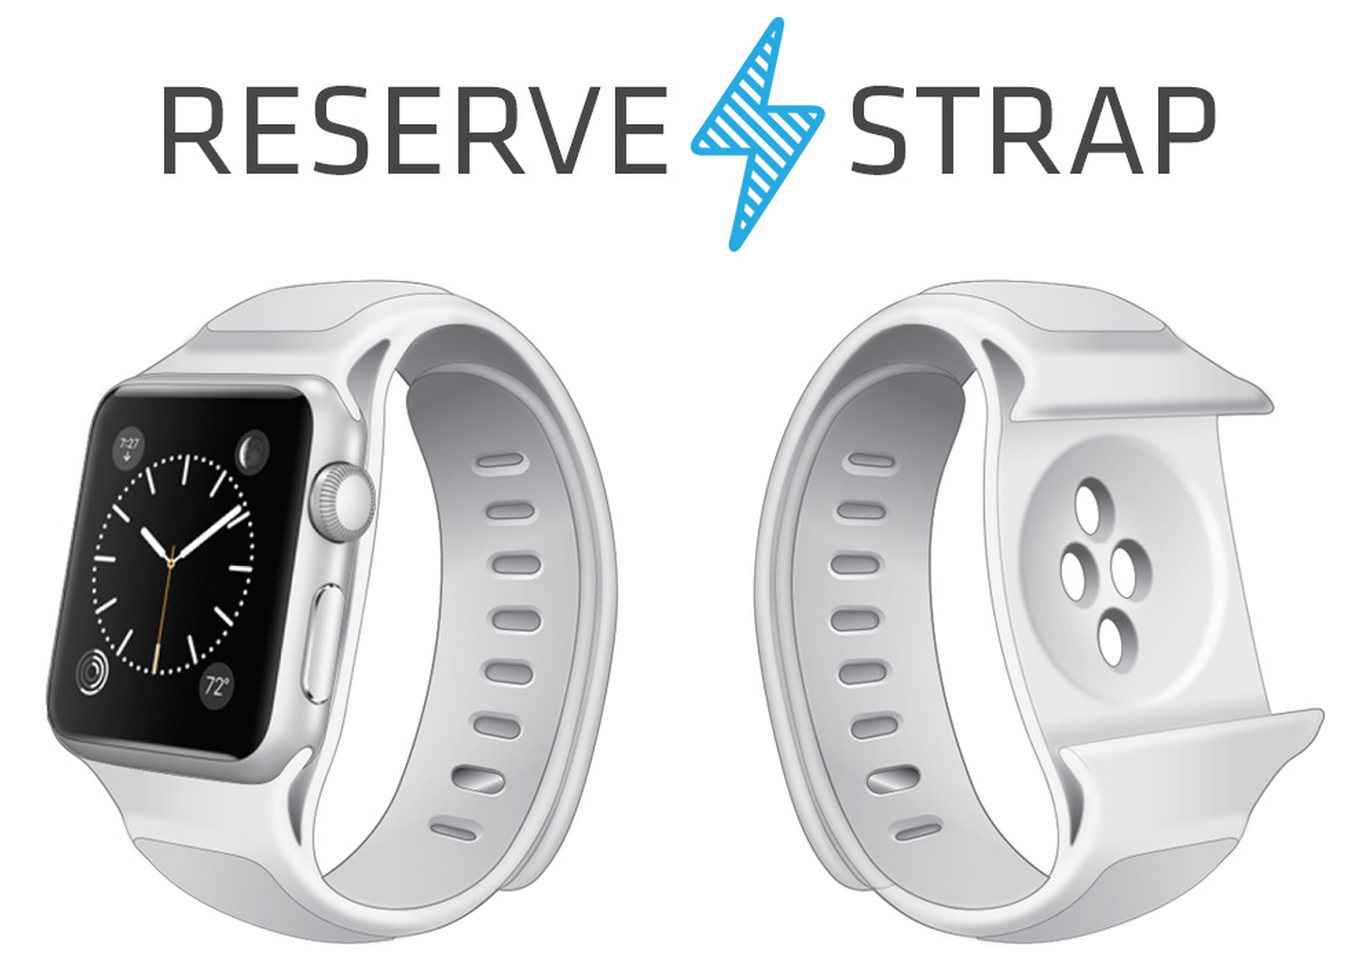 The Best Apple Watch Accessories Bands Cases Docks Screen Baterai Iwatch 2 38mm Reserve Strap 02